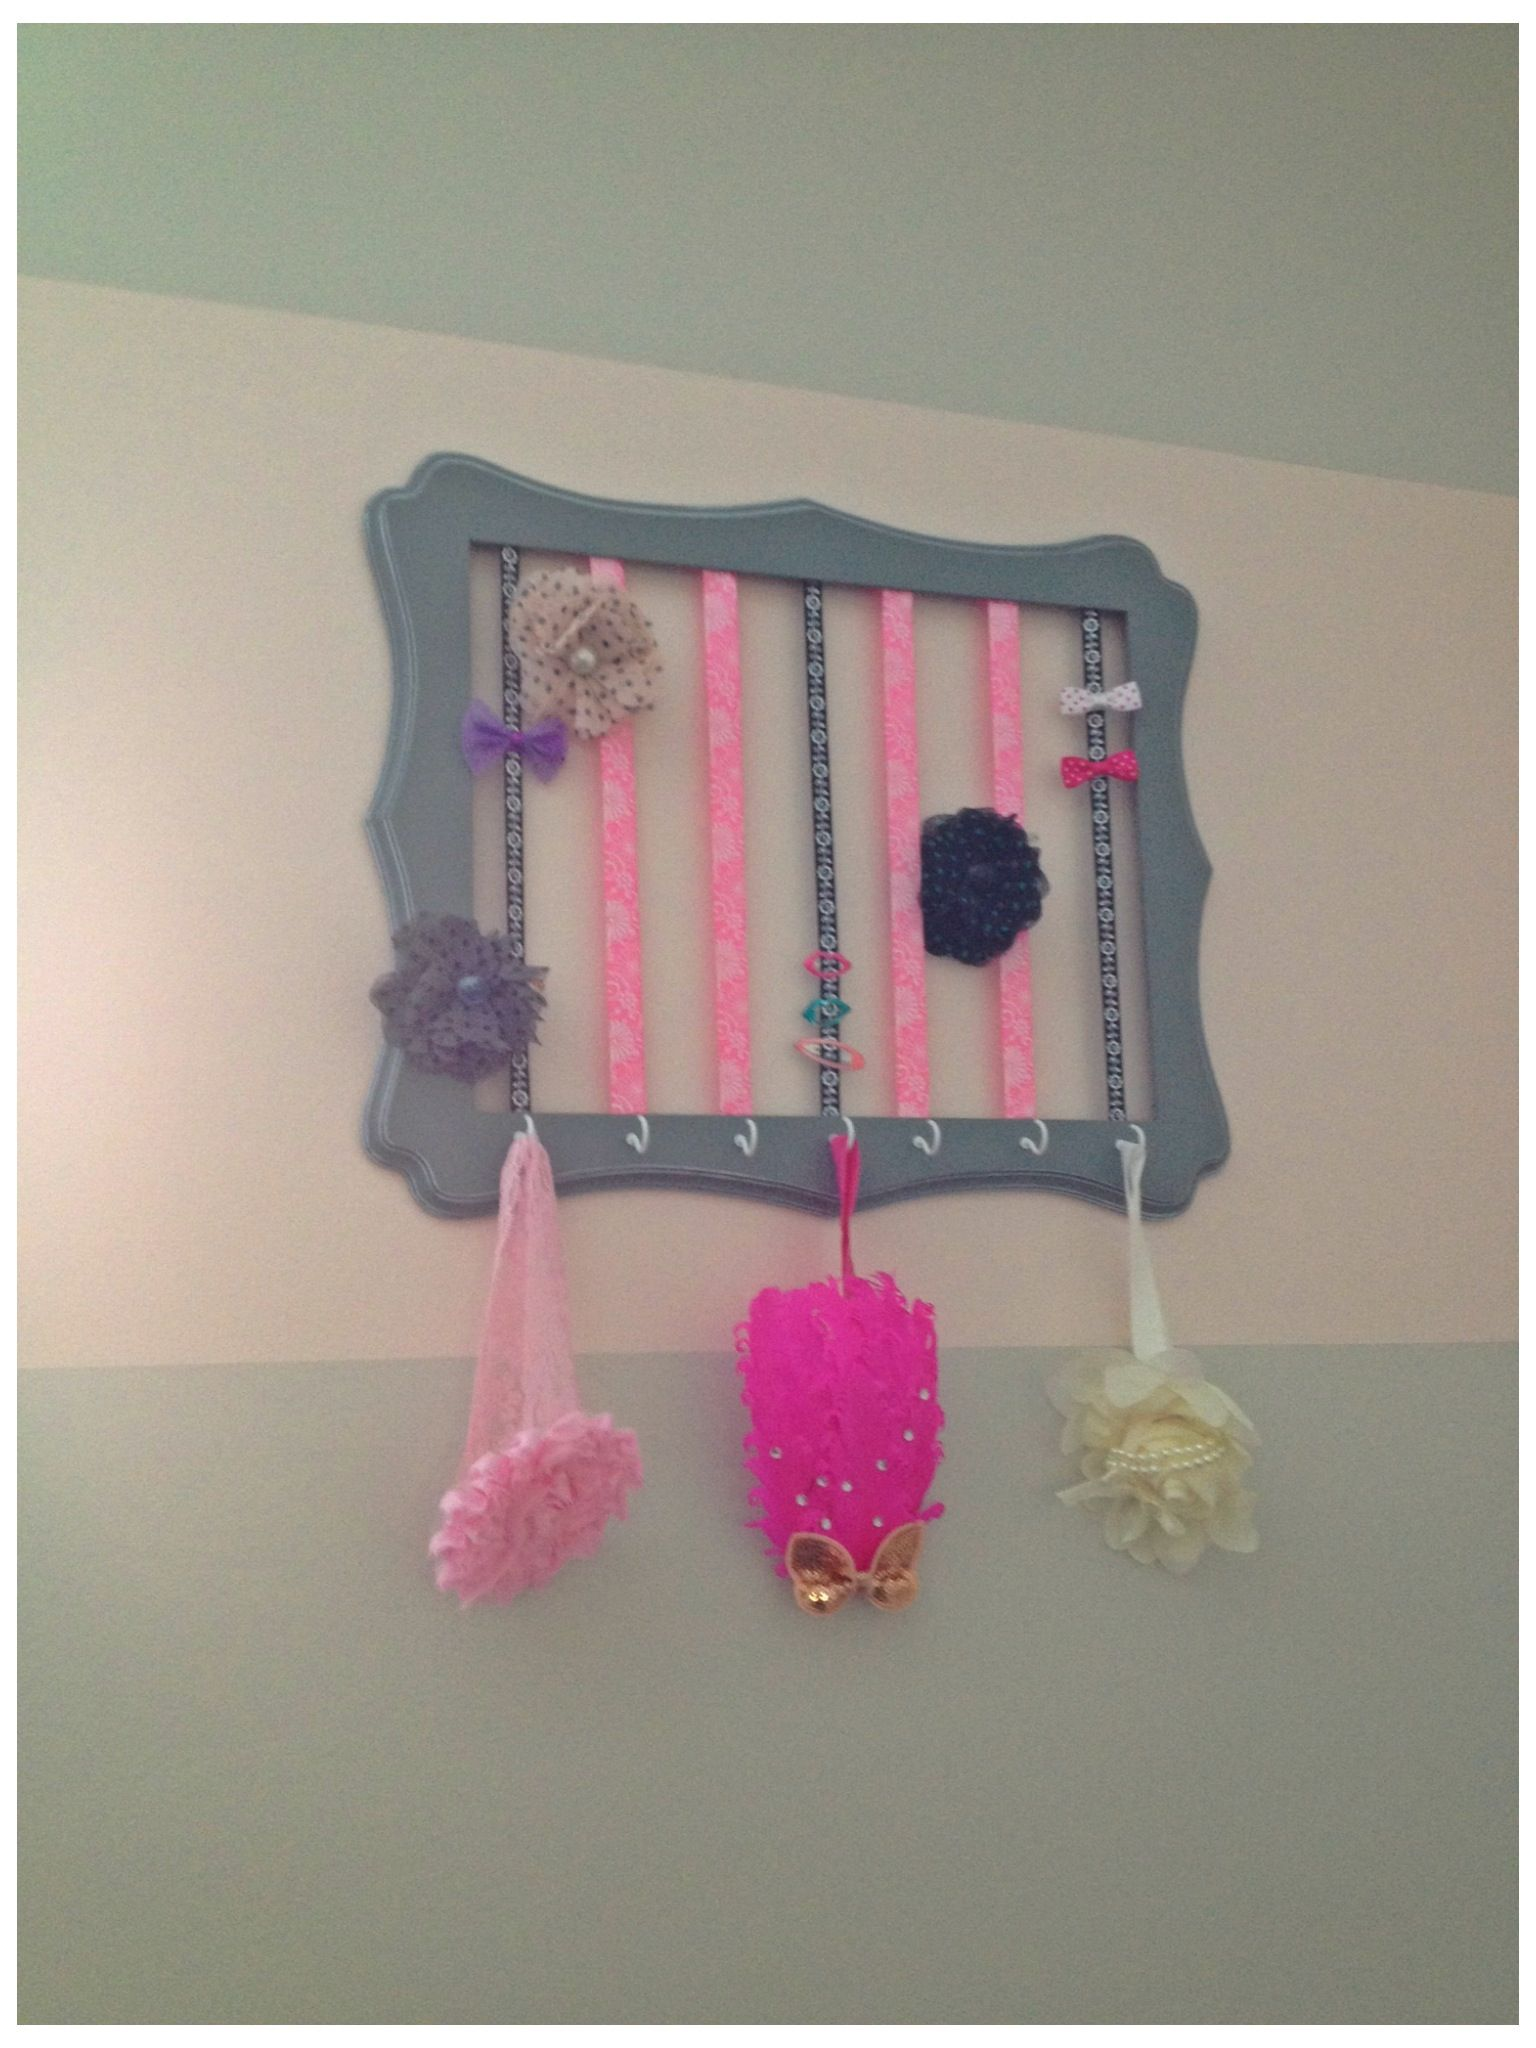 Diy hair accessories for baby girl - Easy Diy Hair Clip Holder Headband Storage Hair Accessory Organizer Baby Girl Room